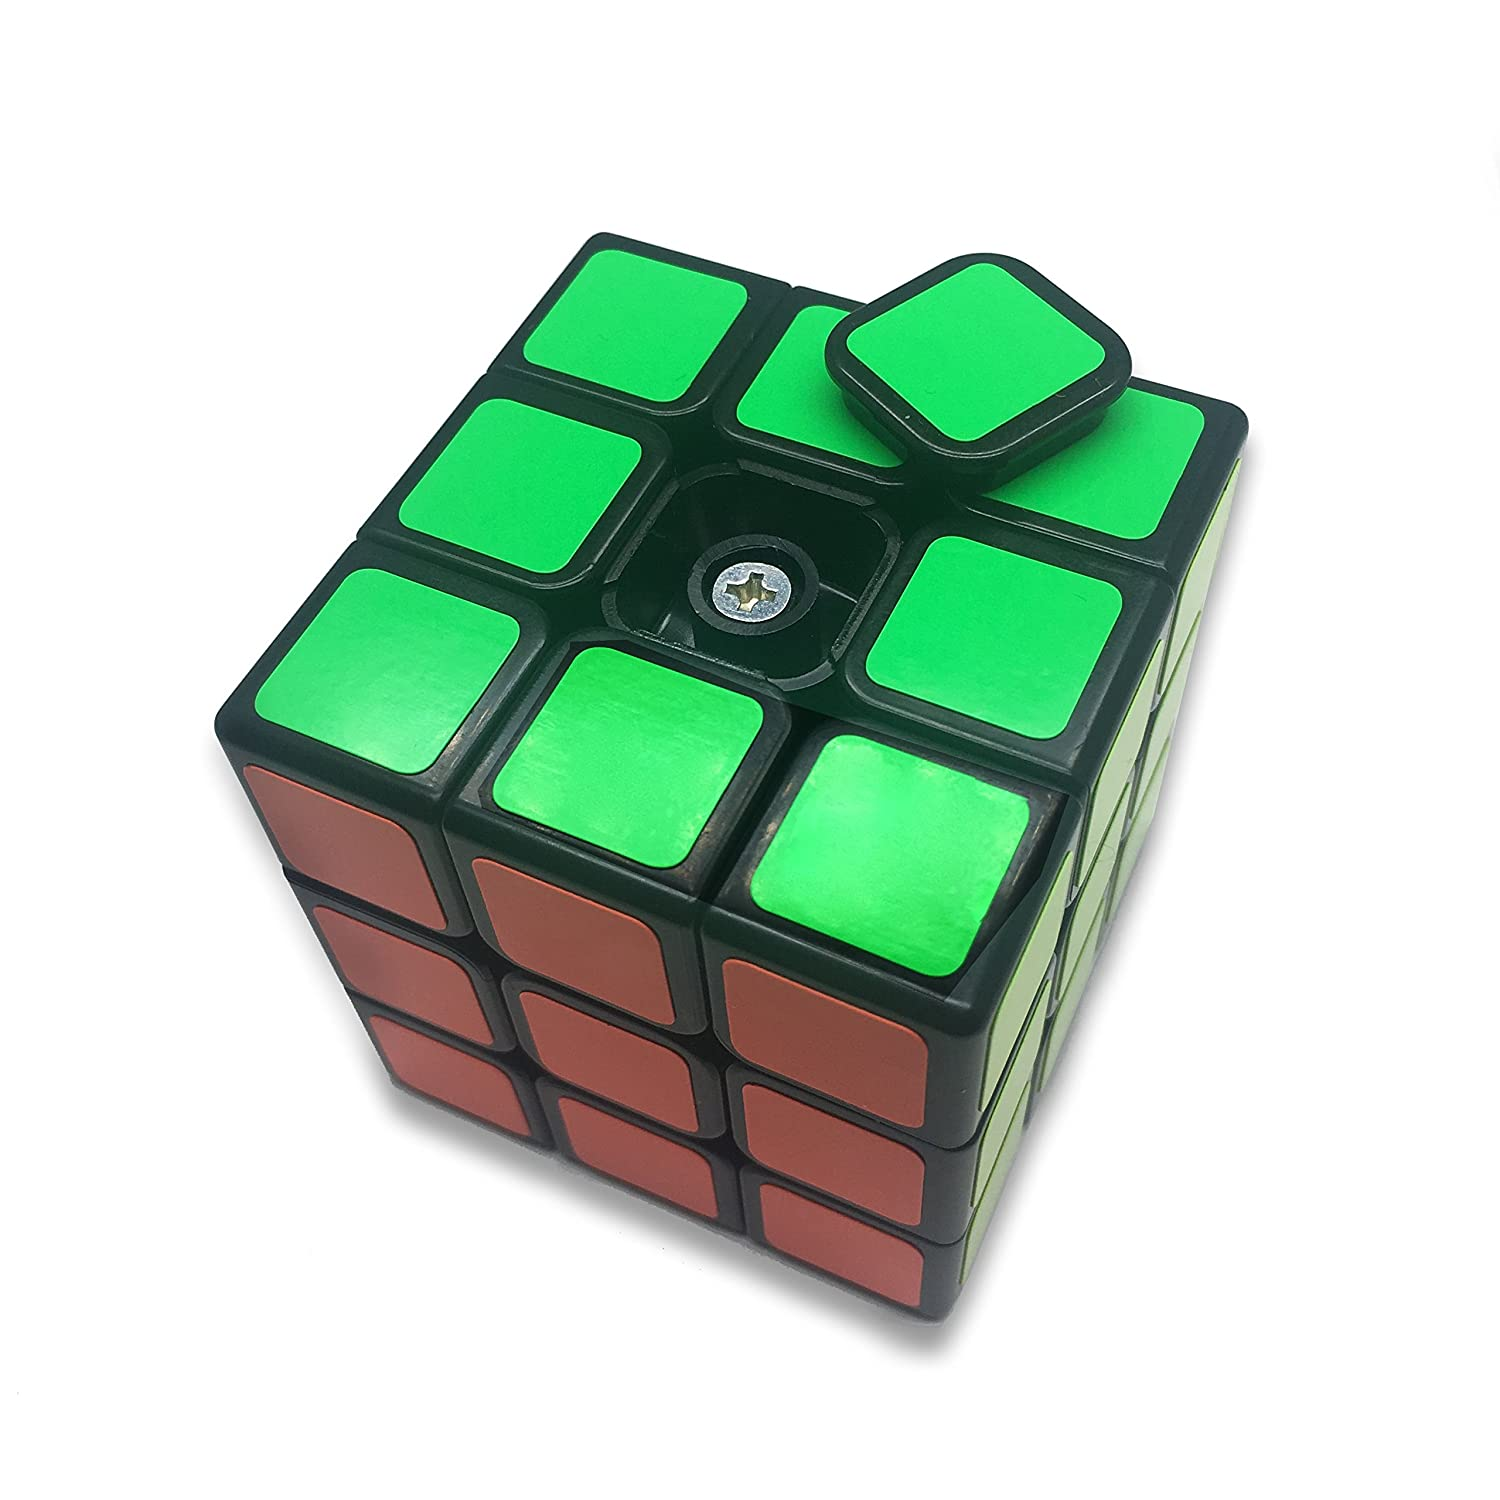 Amazon.com: anditoy velocidad Cube Magic Puzzle Ball ...